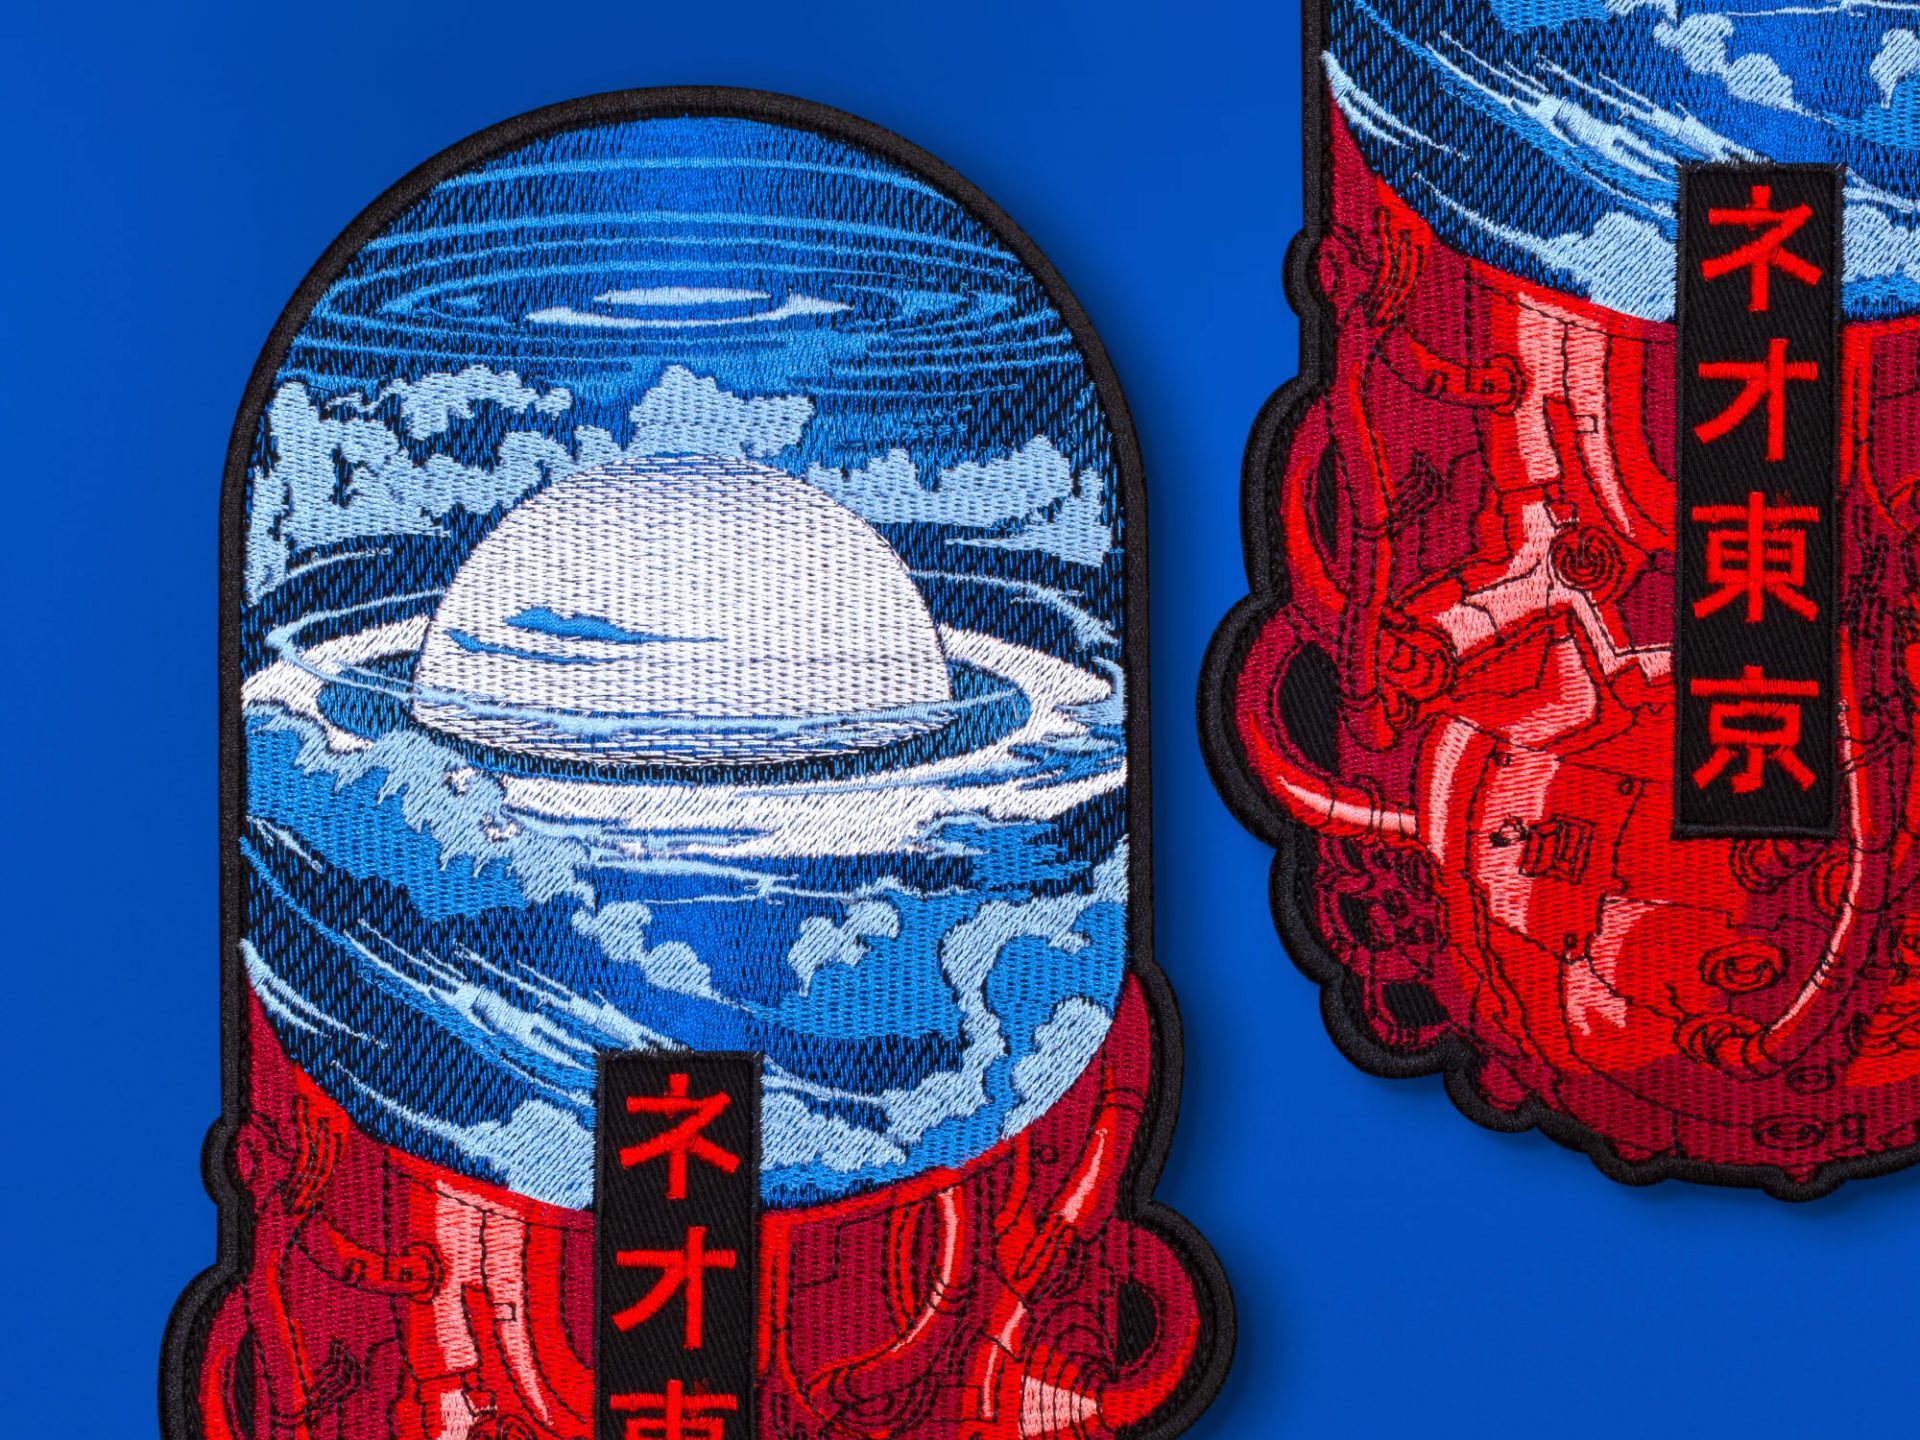 Neo Tokyo Is About To Explode Akira Pill Anime Embroidered Back Patch Graphicine